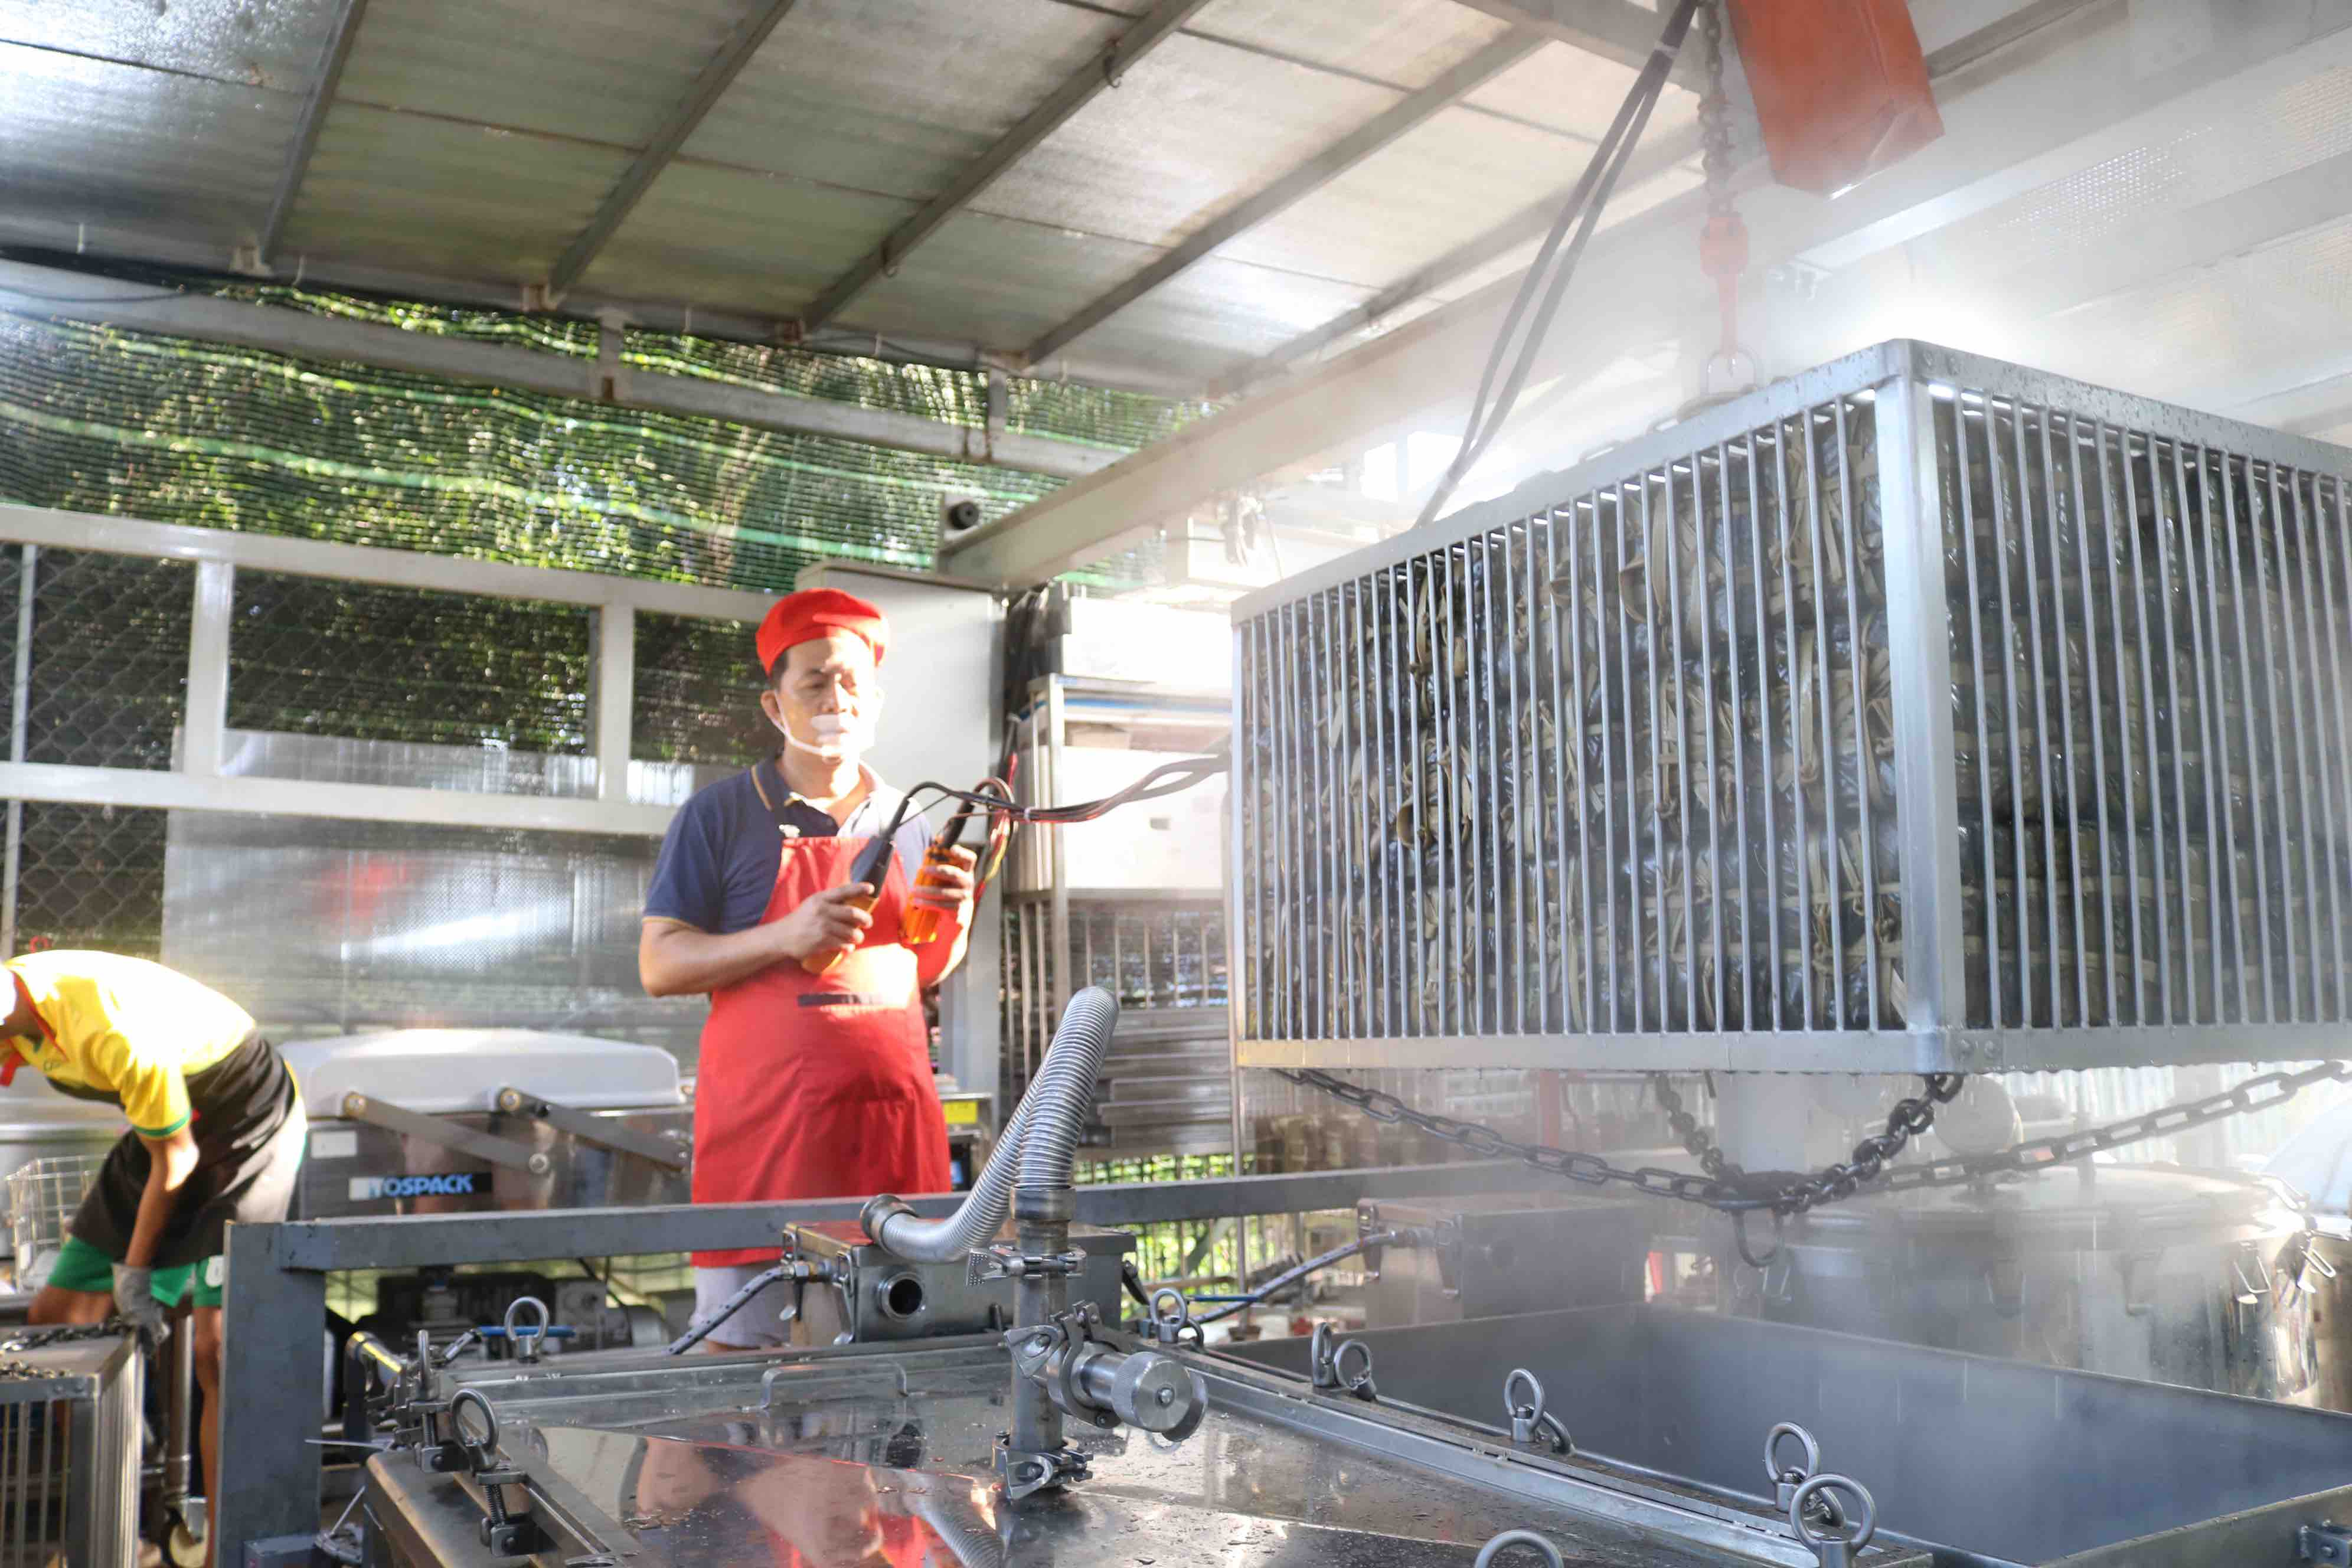 Pham Khac Tuong controls the crane to take out the cooked banh chung. Photo: Hoang An / Tuoi Tre